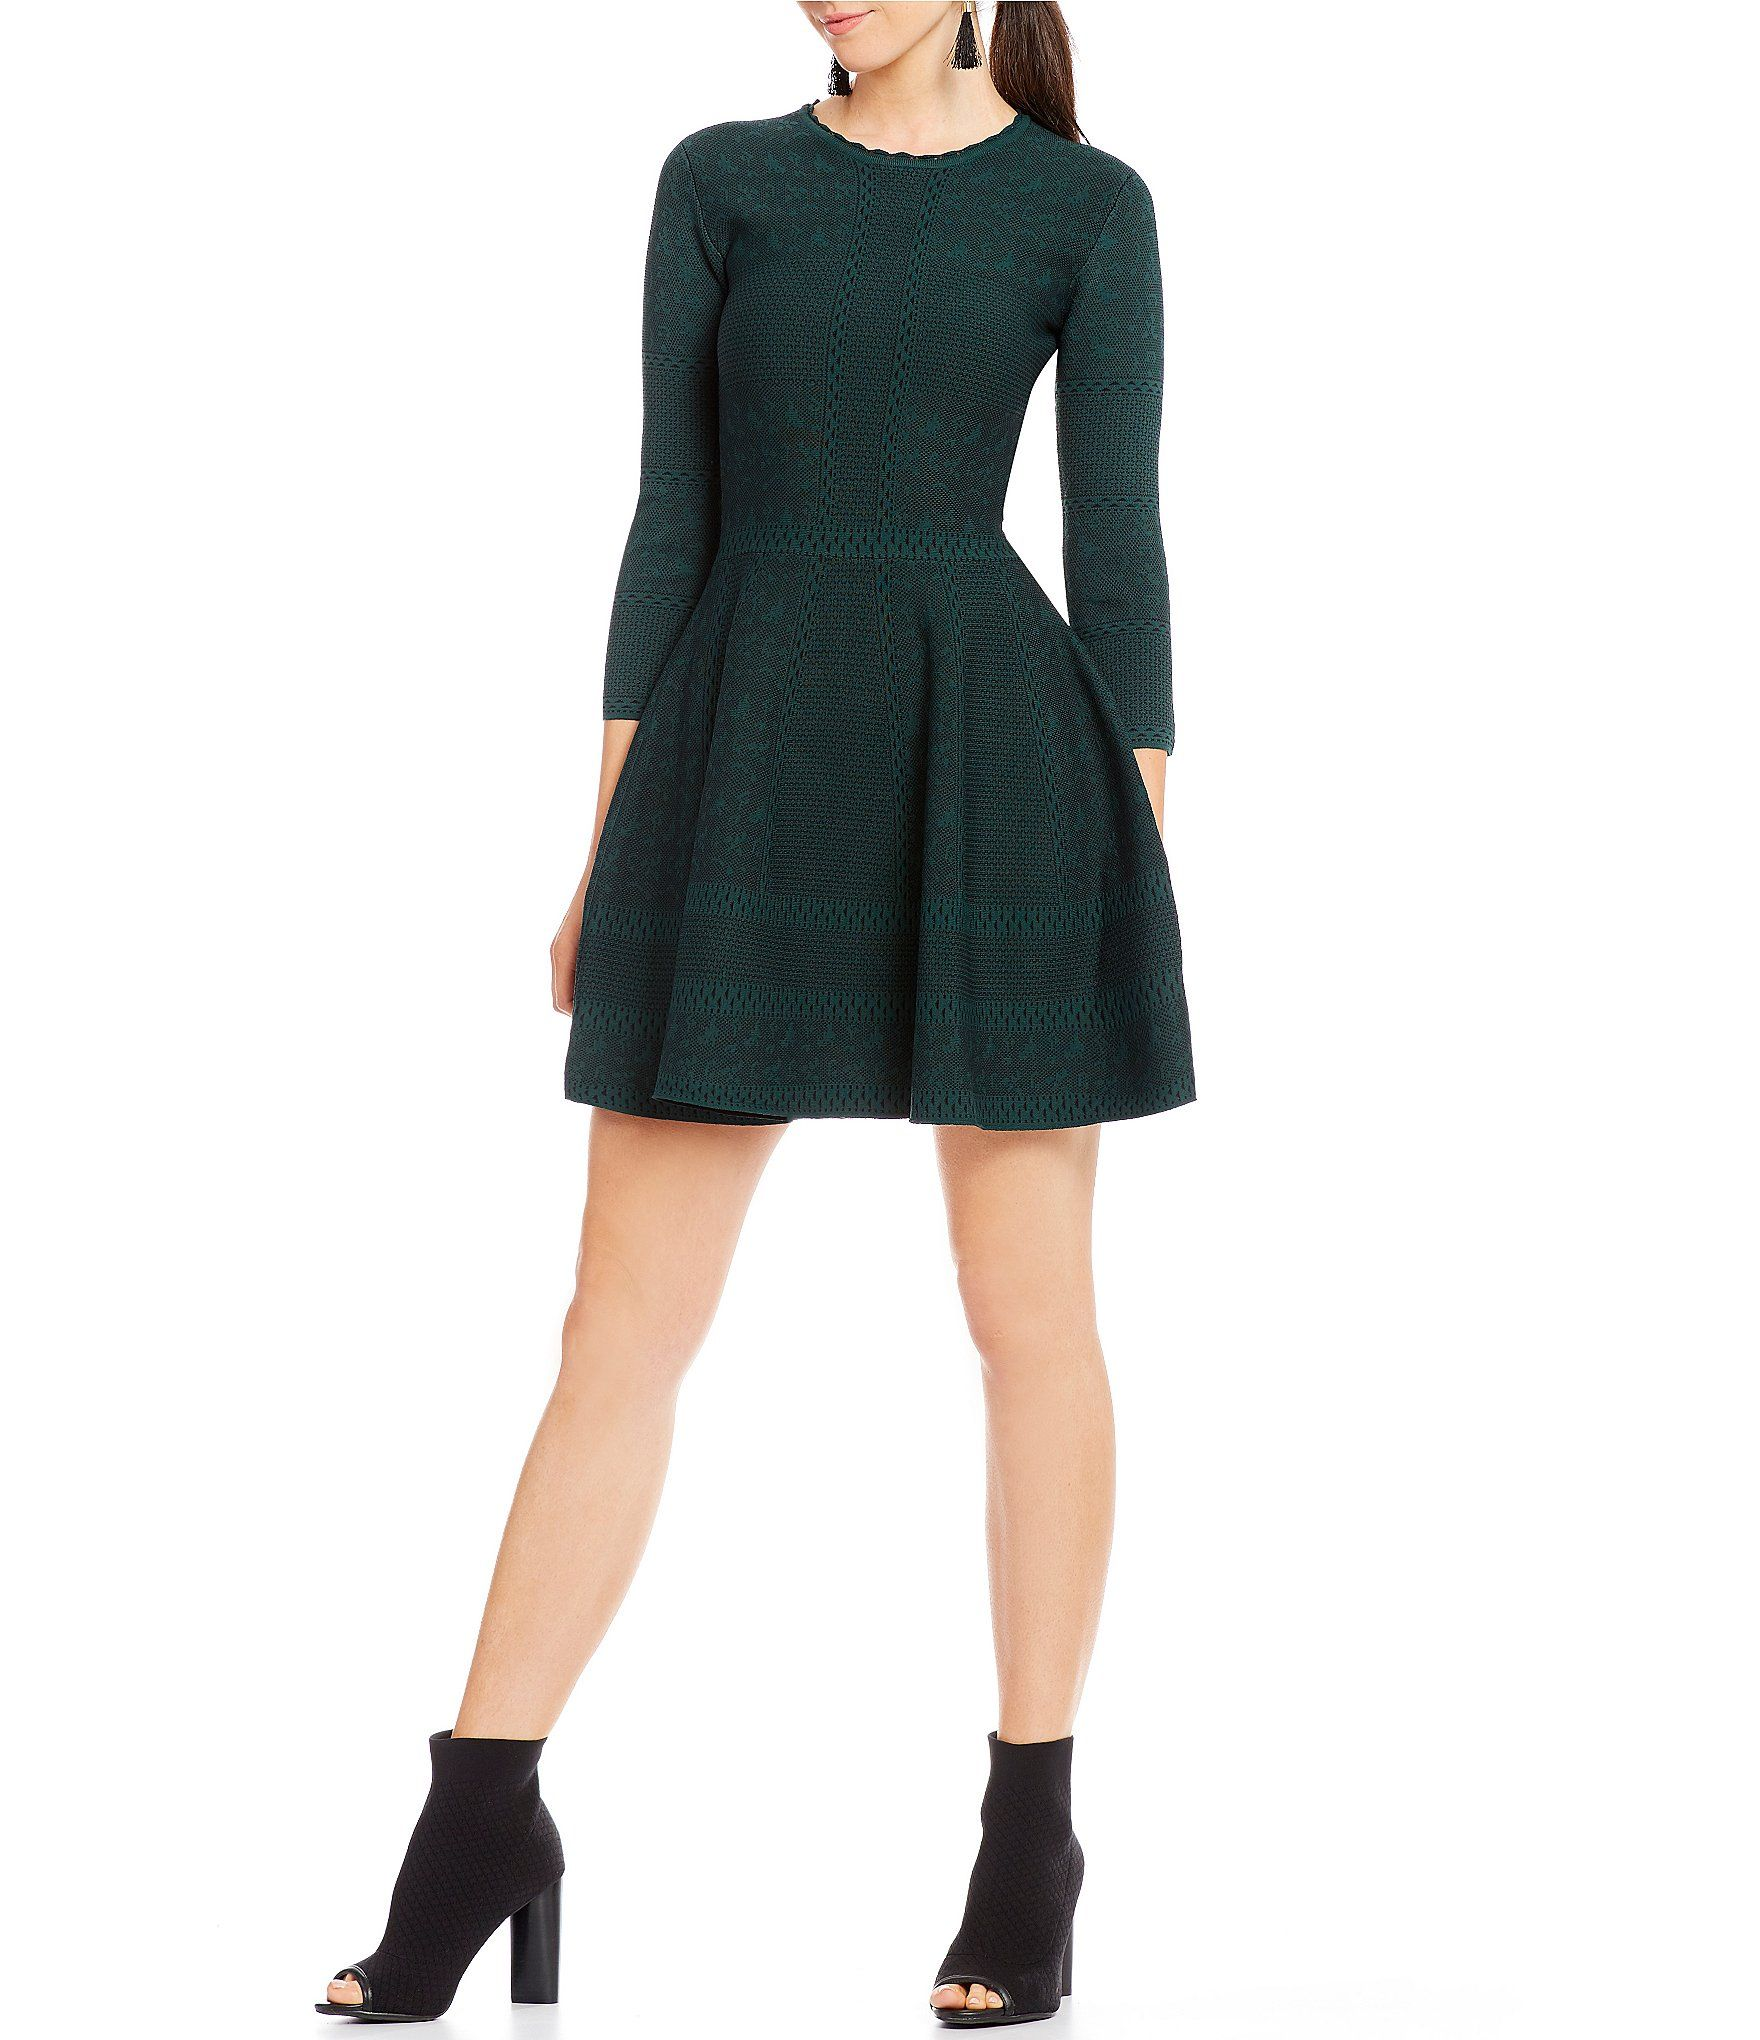 51430bba07e Shop for Gianni Bini Fan Fav Tracy Skater Sweater Dress at Dillards.com.  Visit Dillards.com to find clothing